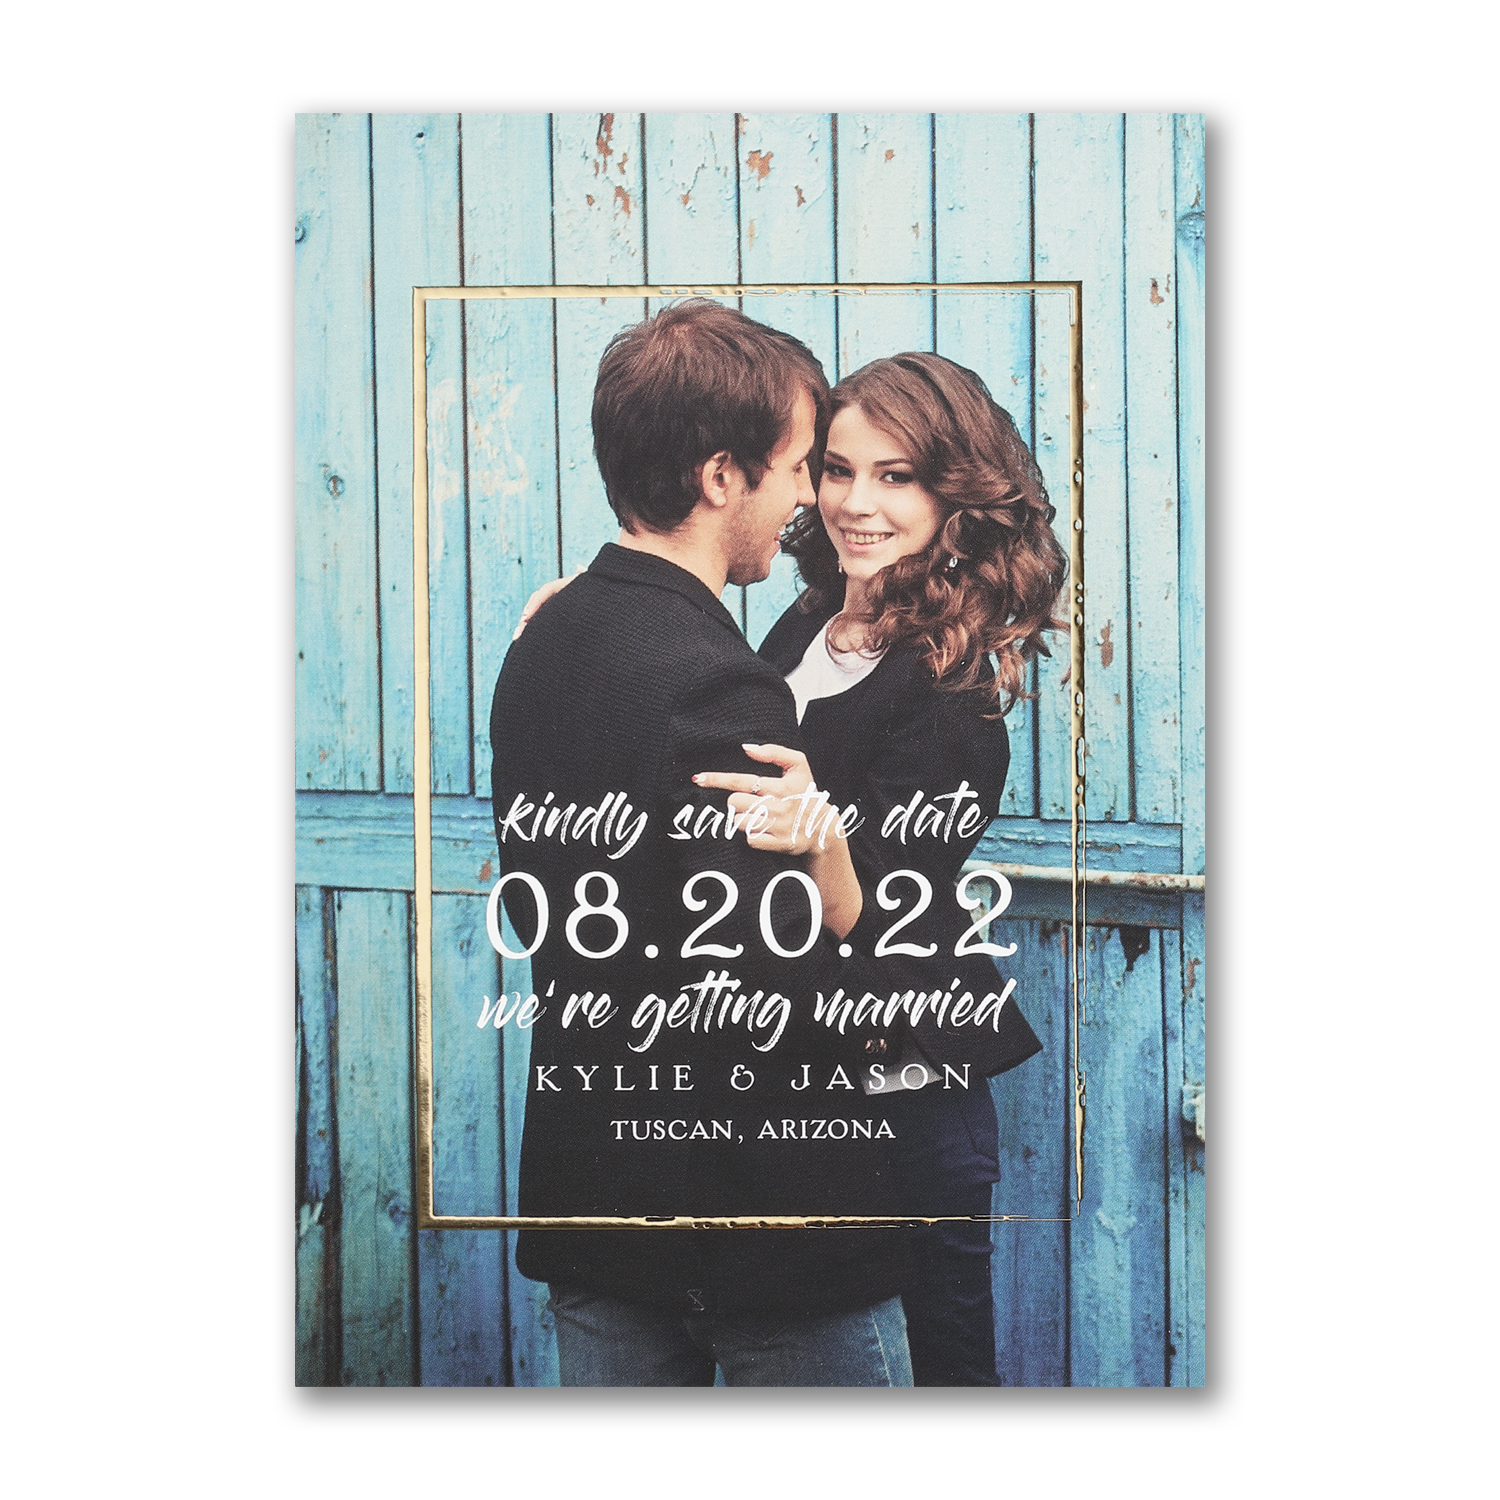 shining border photo save the date gold foil carlson craft